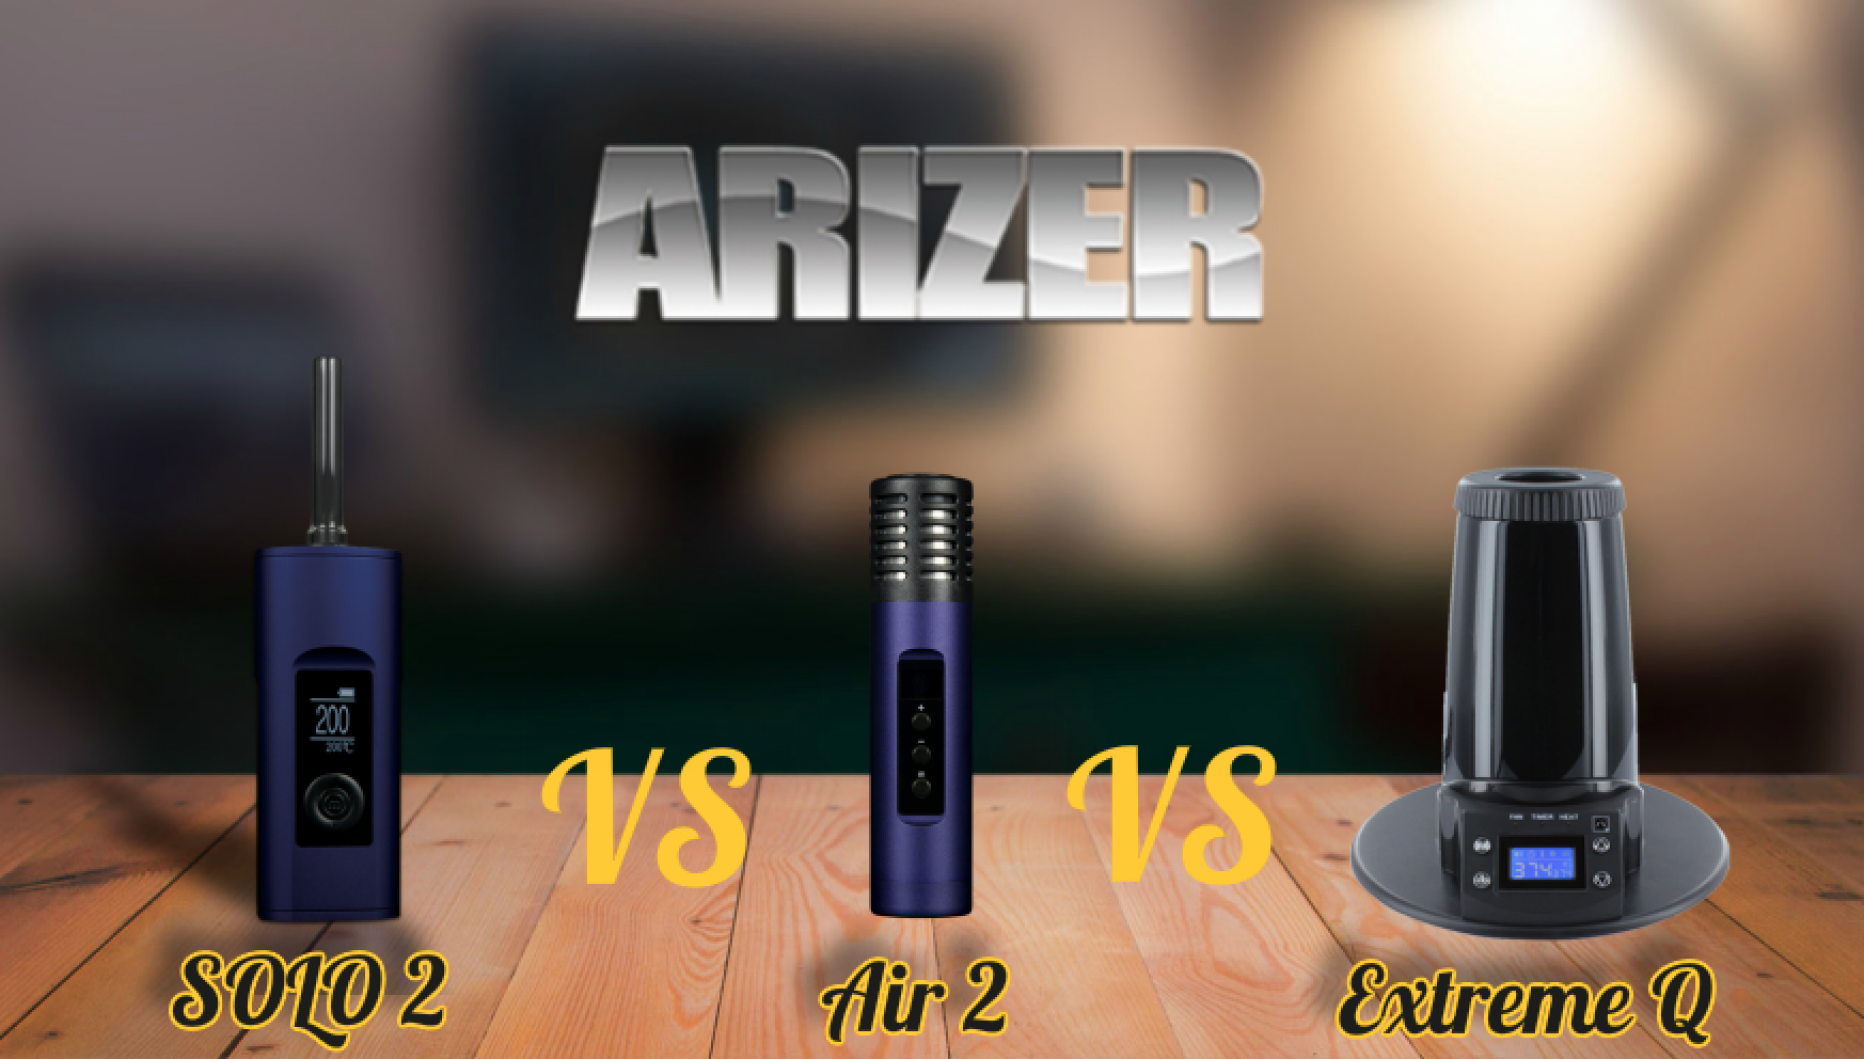 Arizer Solo 2 VS Arizer Air 2 VS Arizer Extrême Q